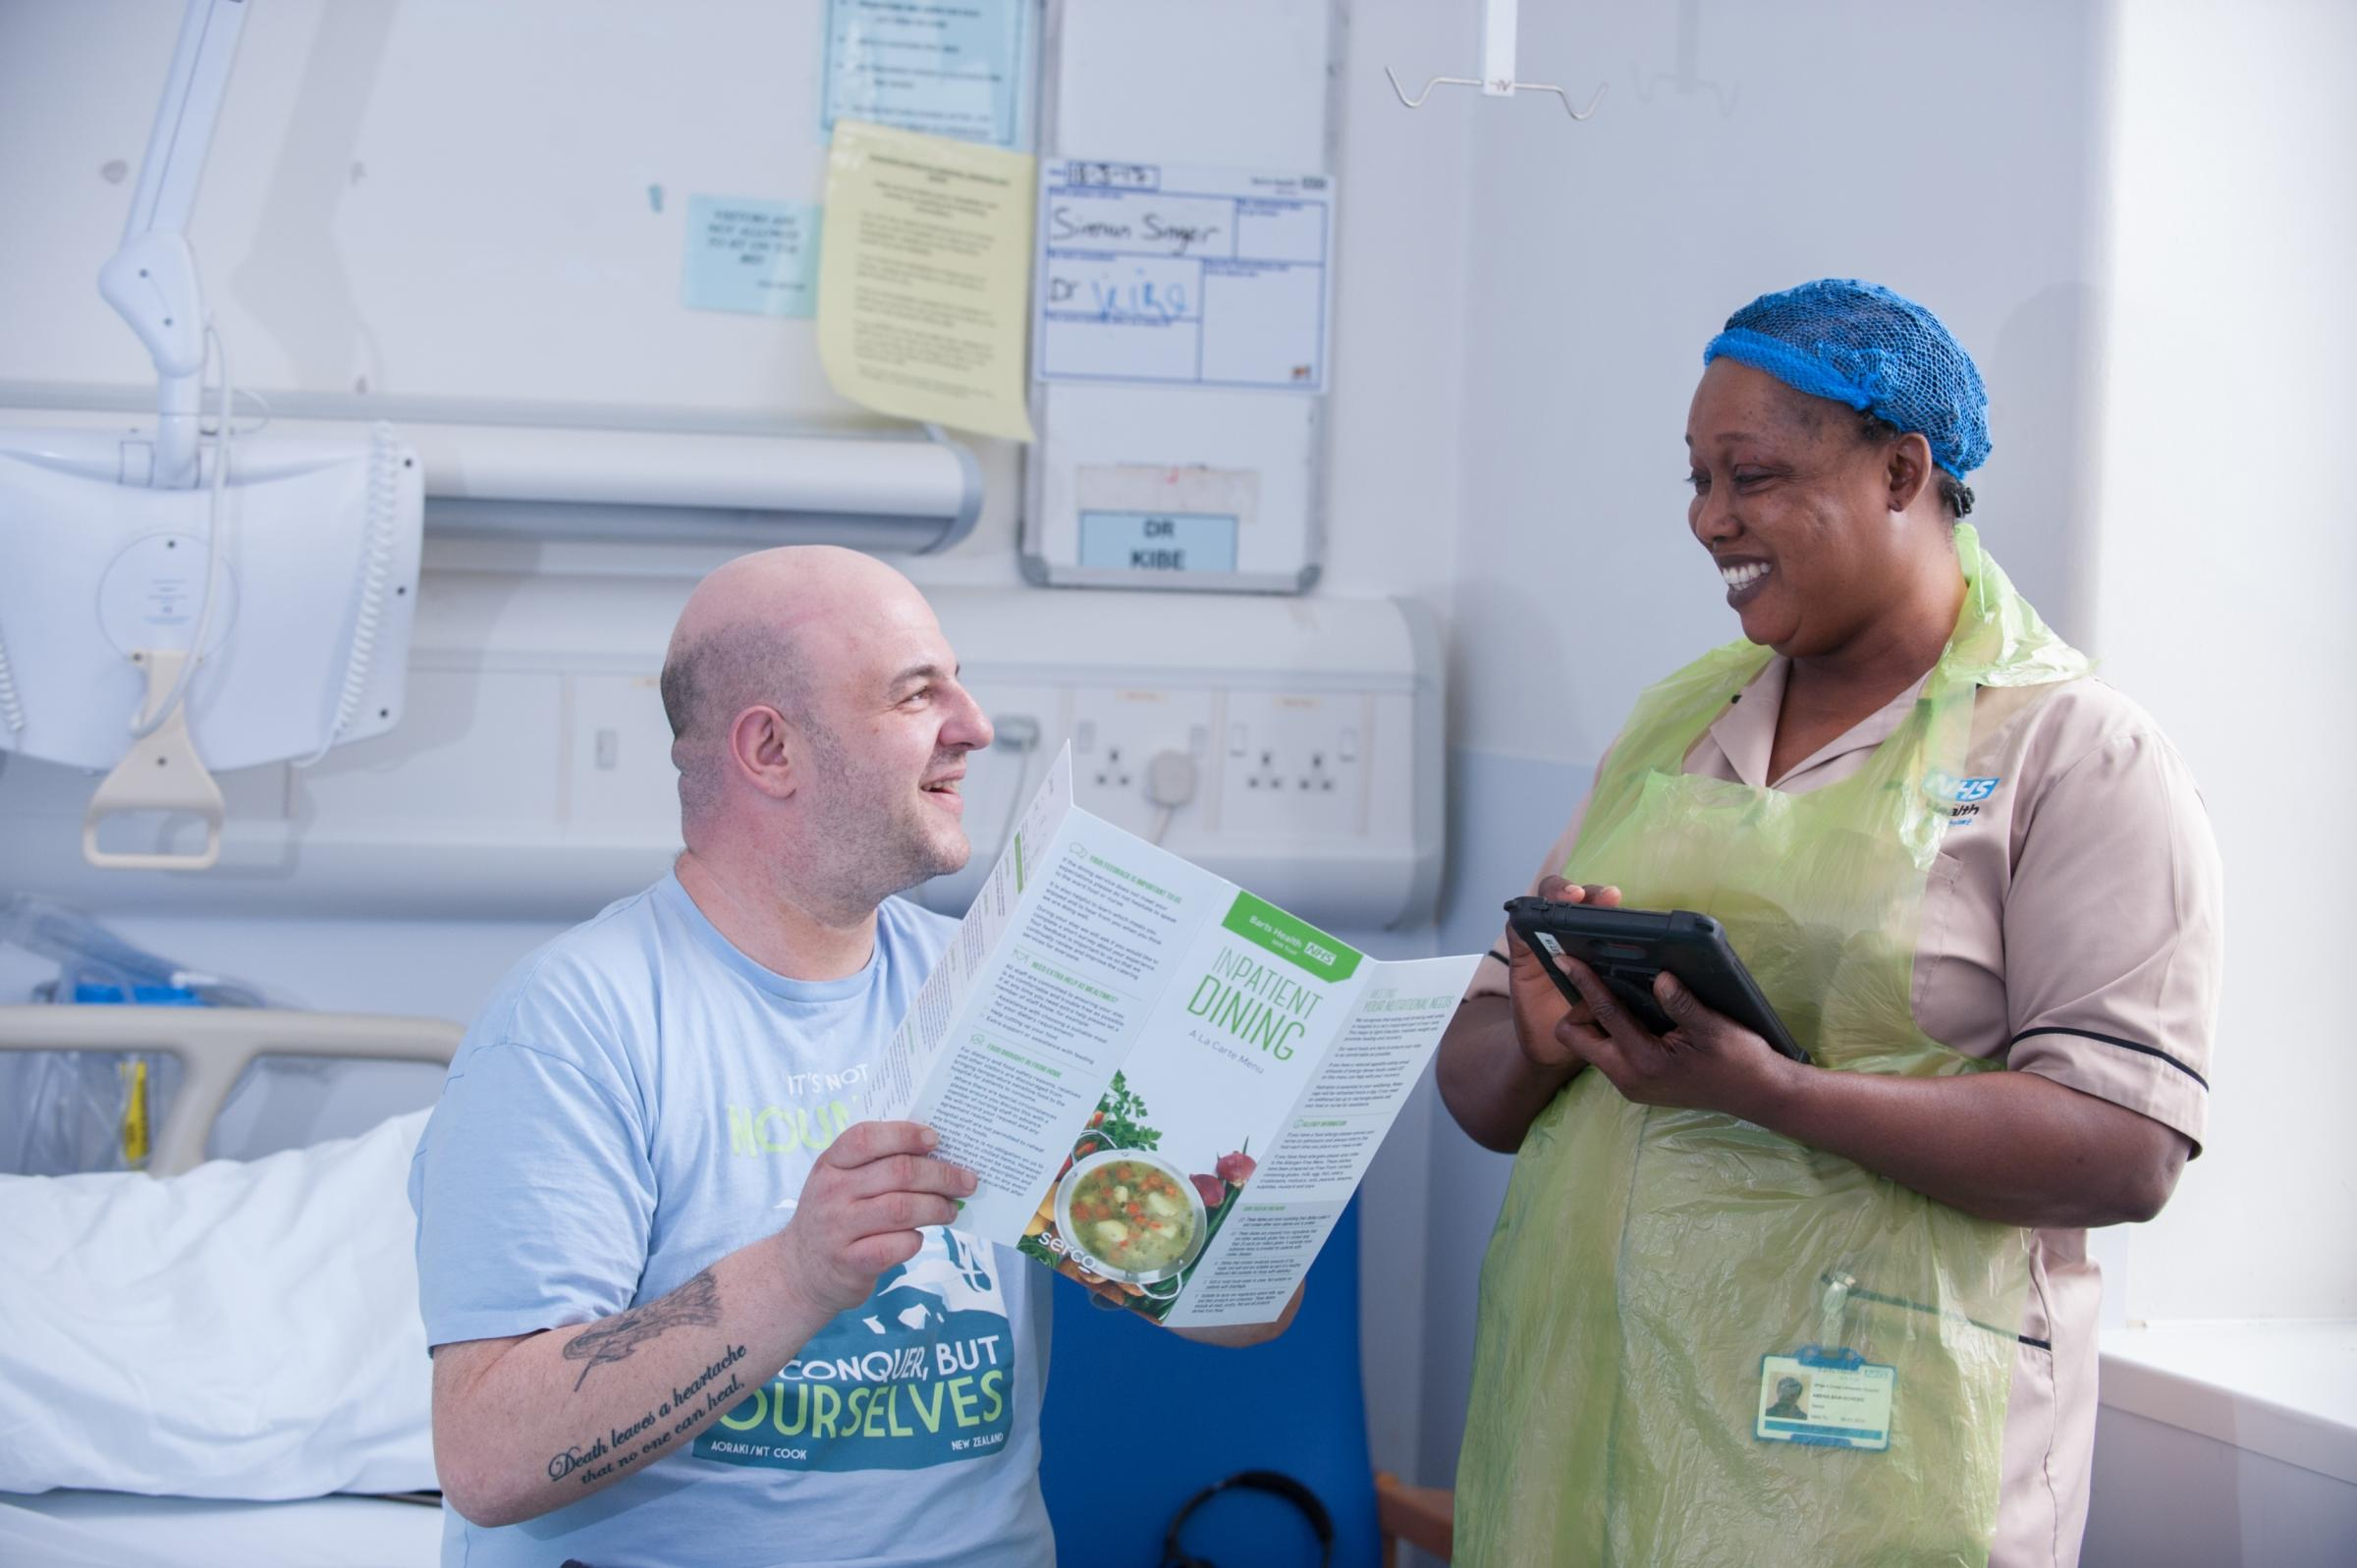 Whipps Cross Hospital in Leytonstone is taking part in a study with five-star chefs to improve patient experience.